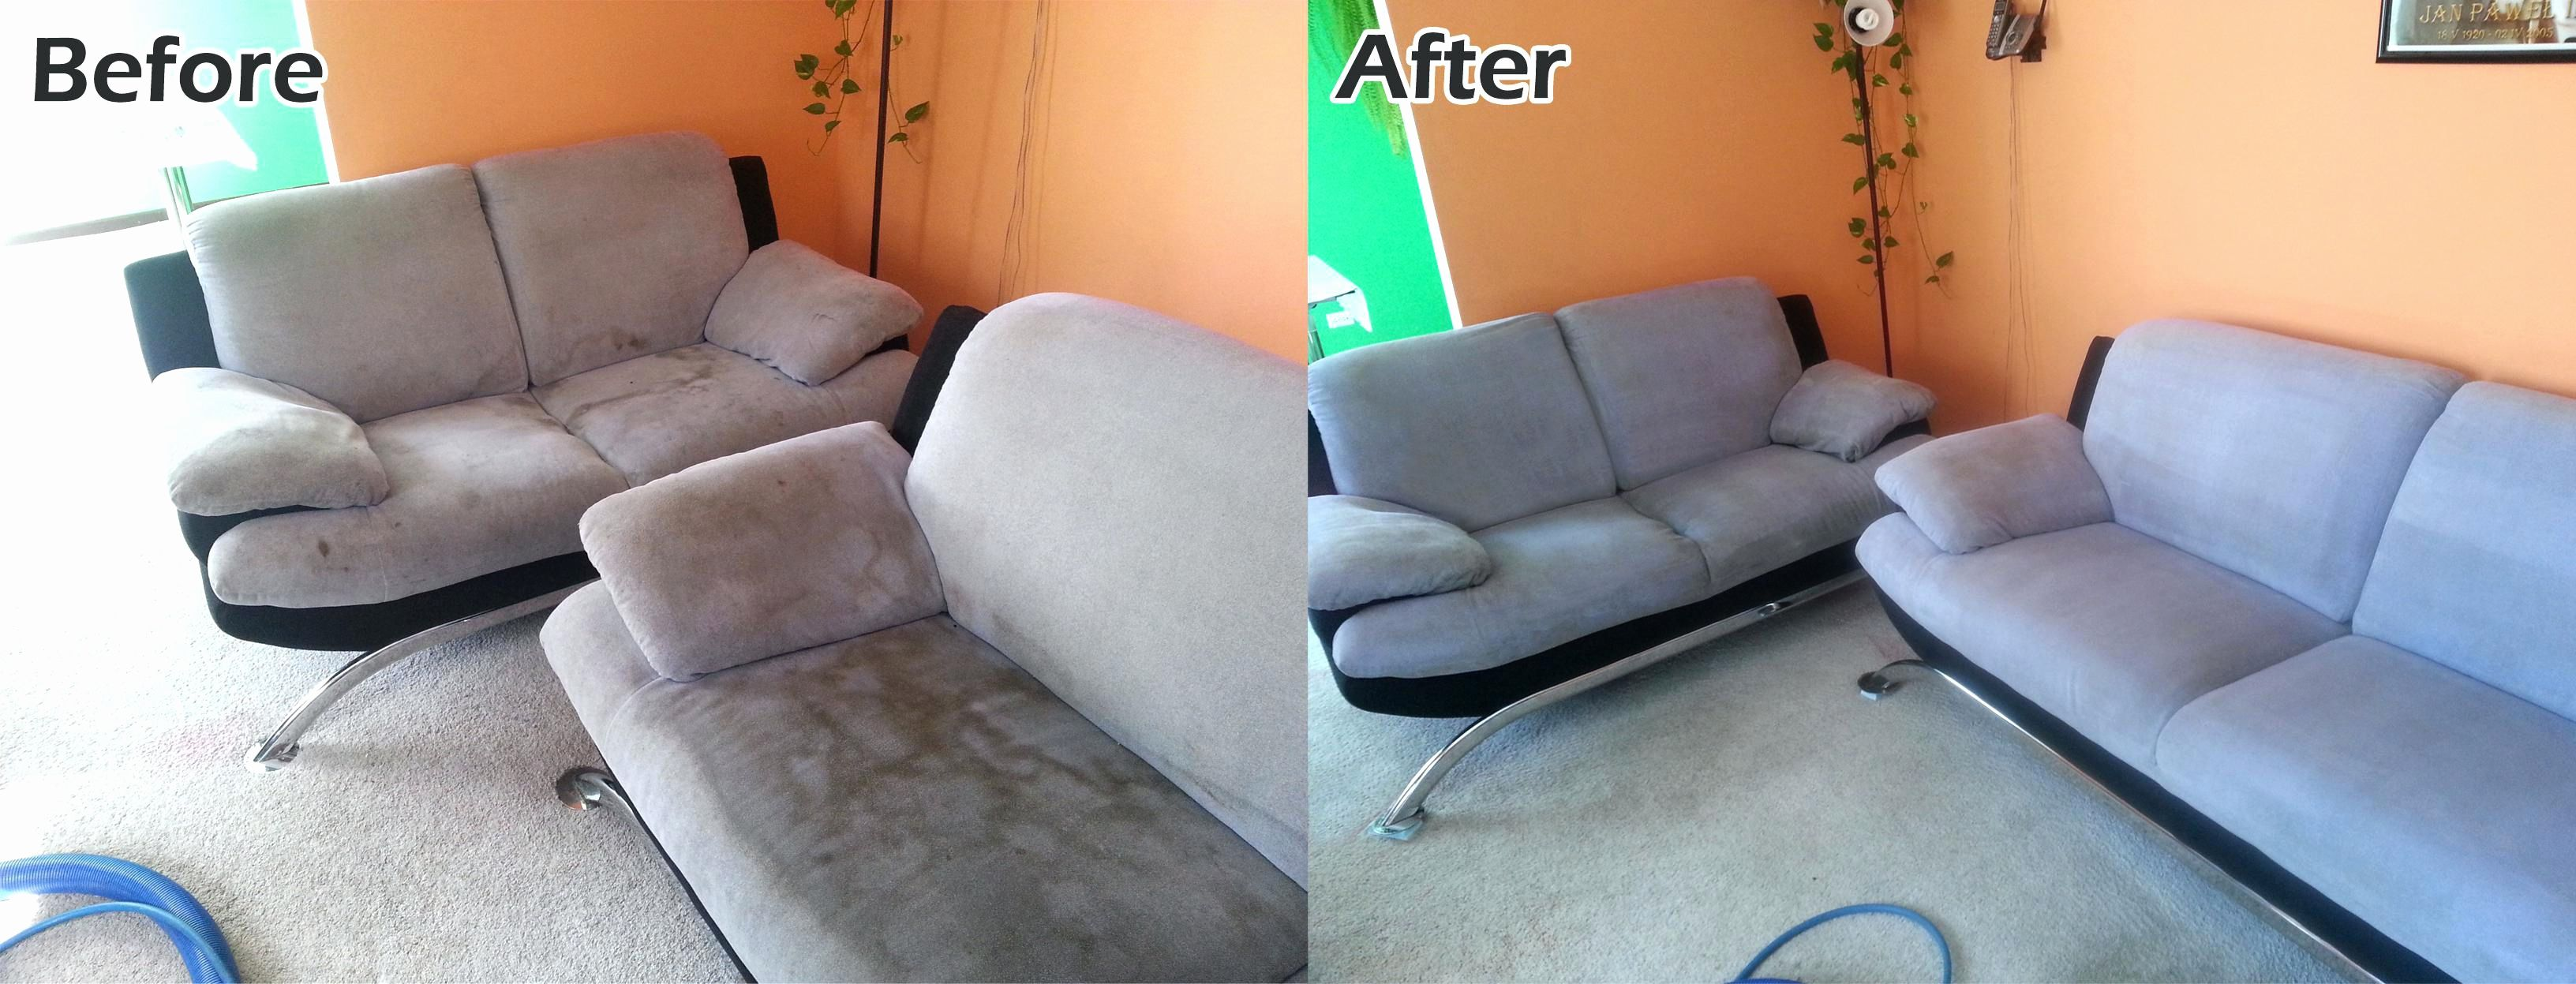 Awesome Cleaning A Microfiber Sofa Cleaning A Microfiber Sofa Awesome Best Way To Clean Furniture Fabric Be Clean Sofa Fabric Sofa Cover Sofa Cleaning Services